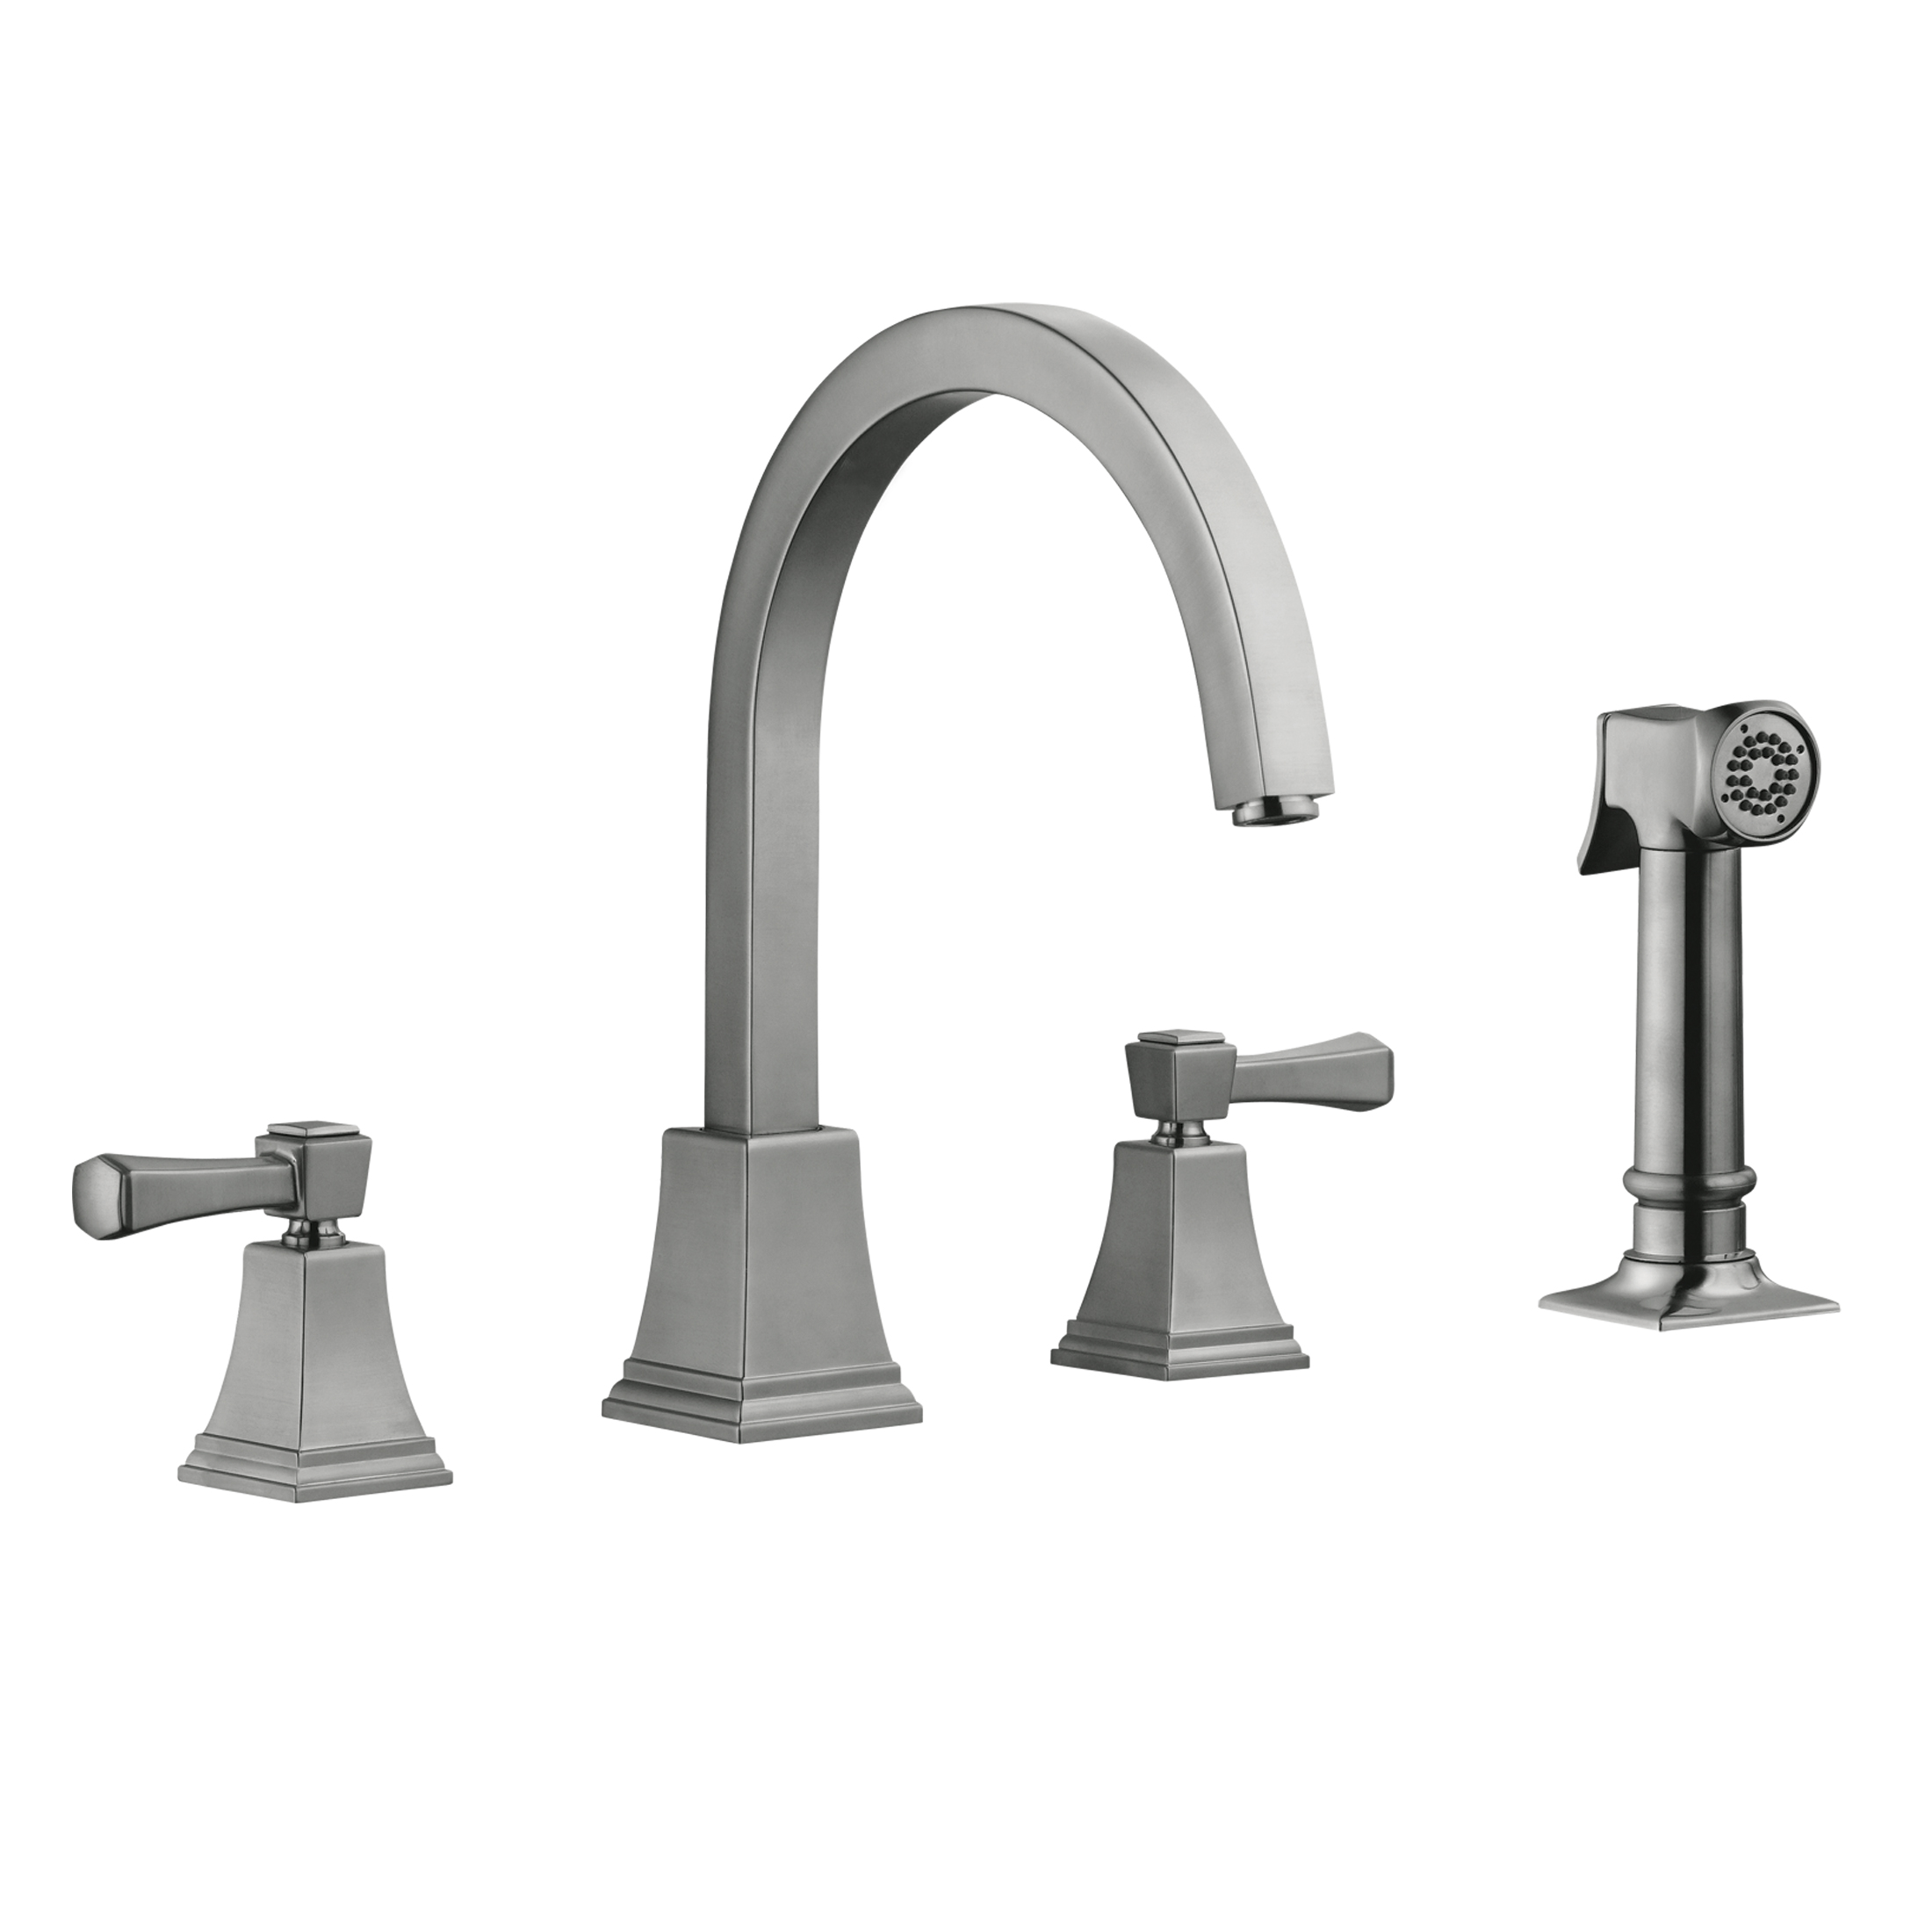 sears kitchen faucets american standard faucet replacement parts torino 522110 plumbing design house